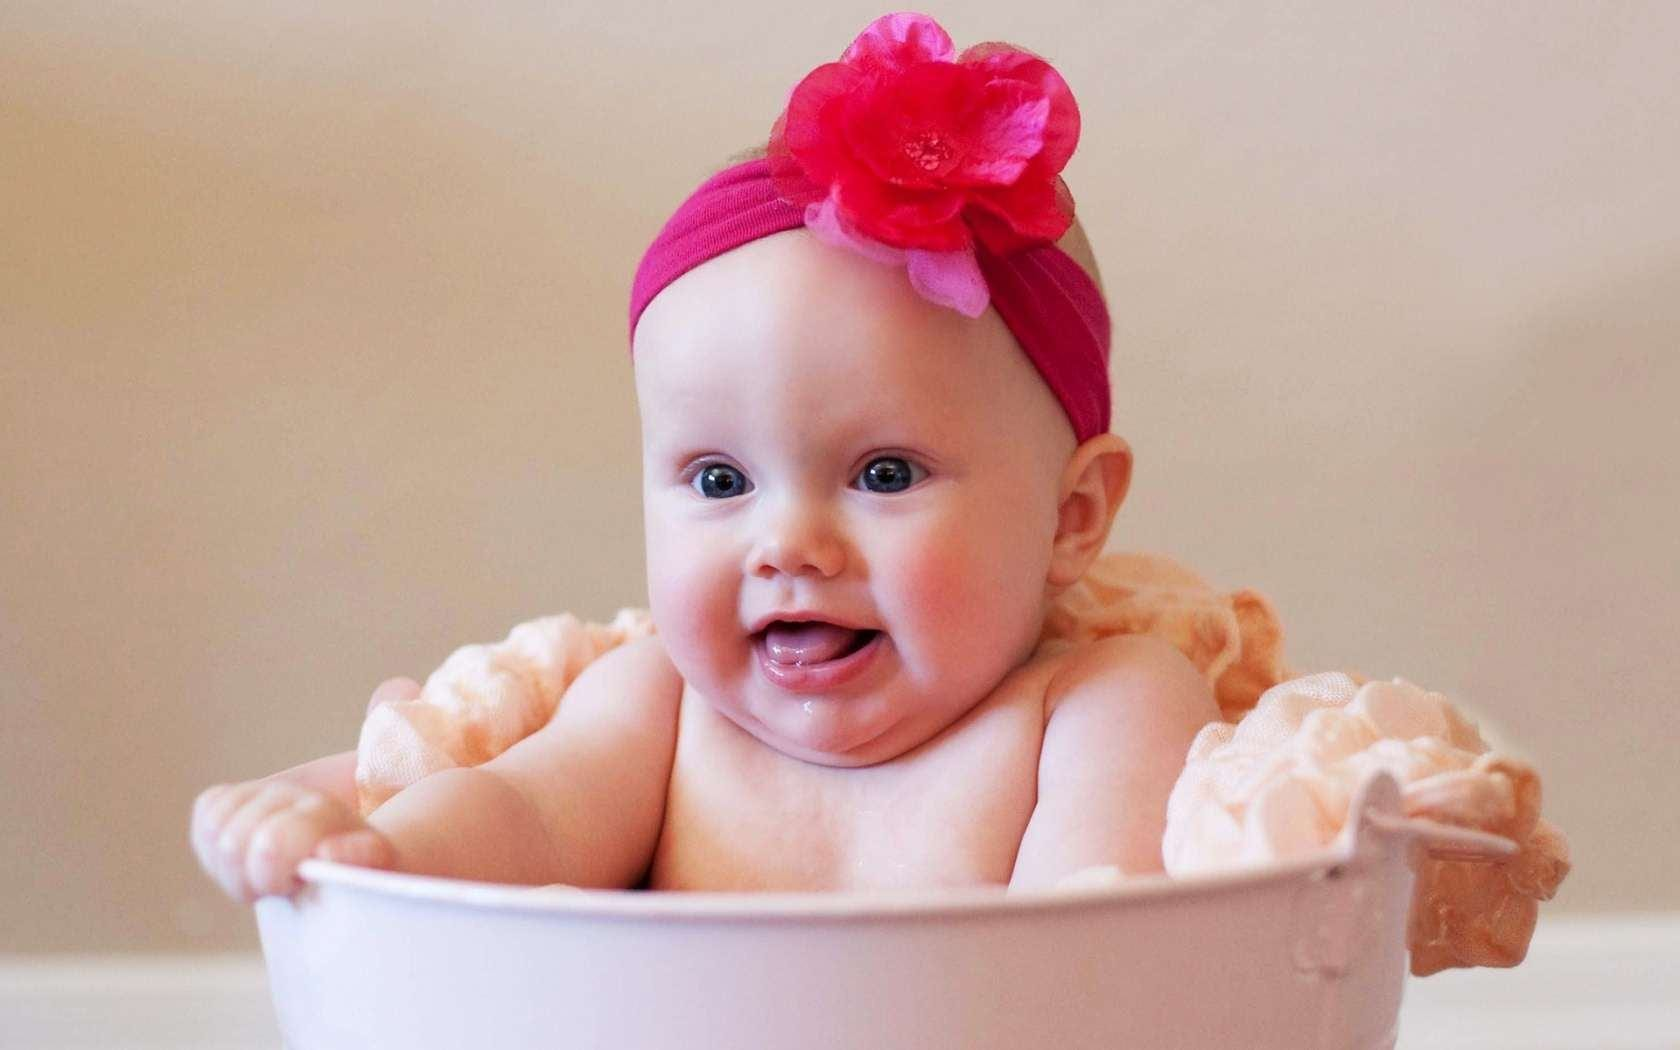 cute_baby_girl_in_bath_tub_2